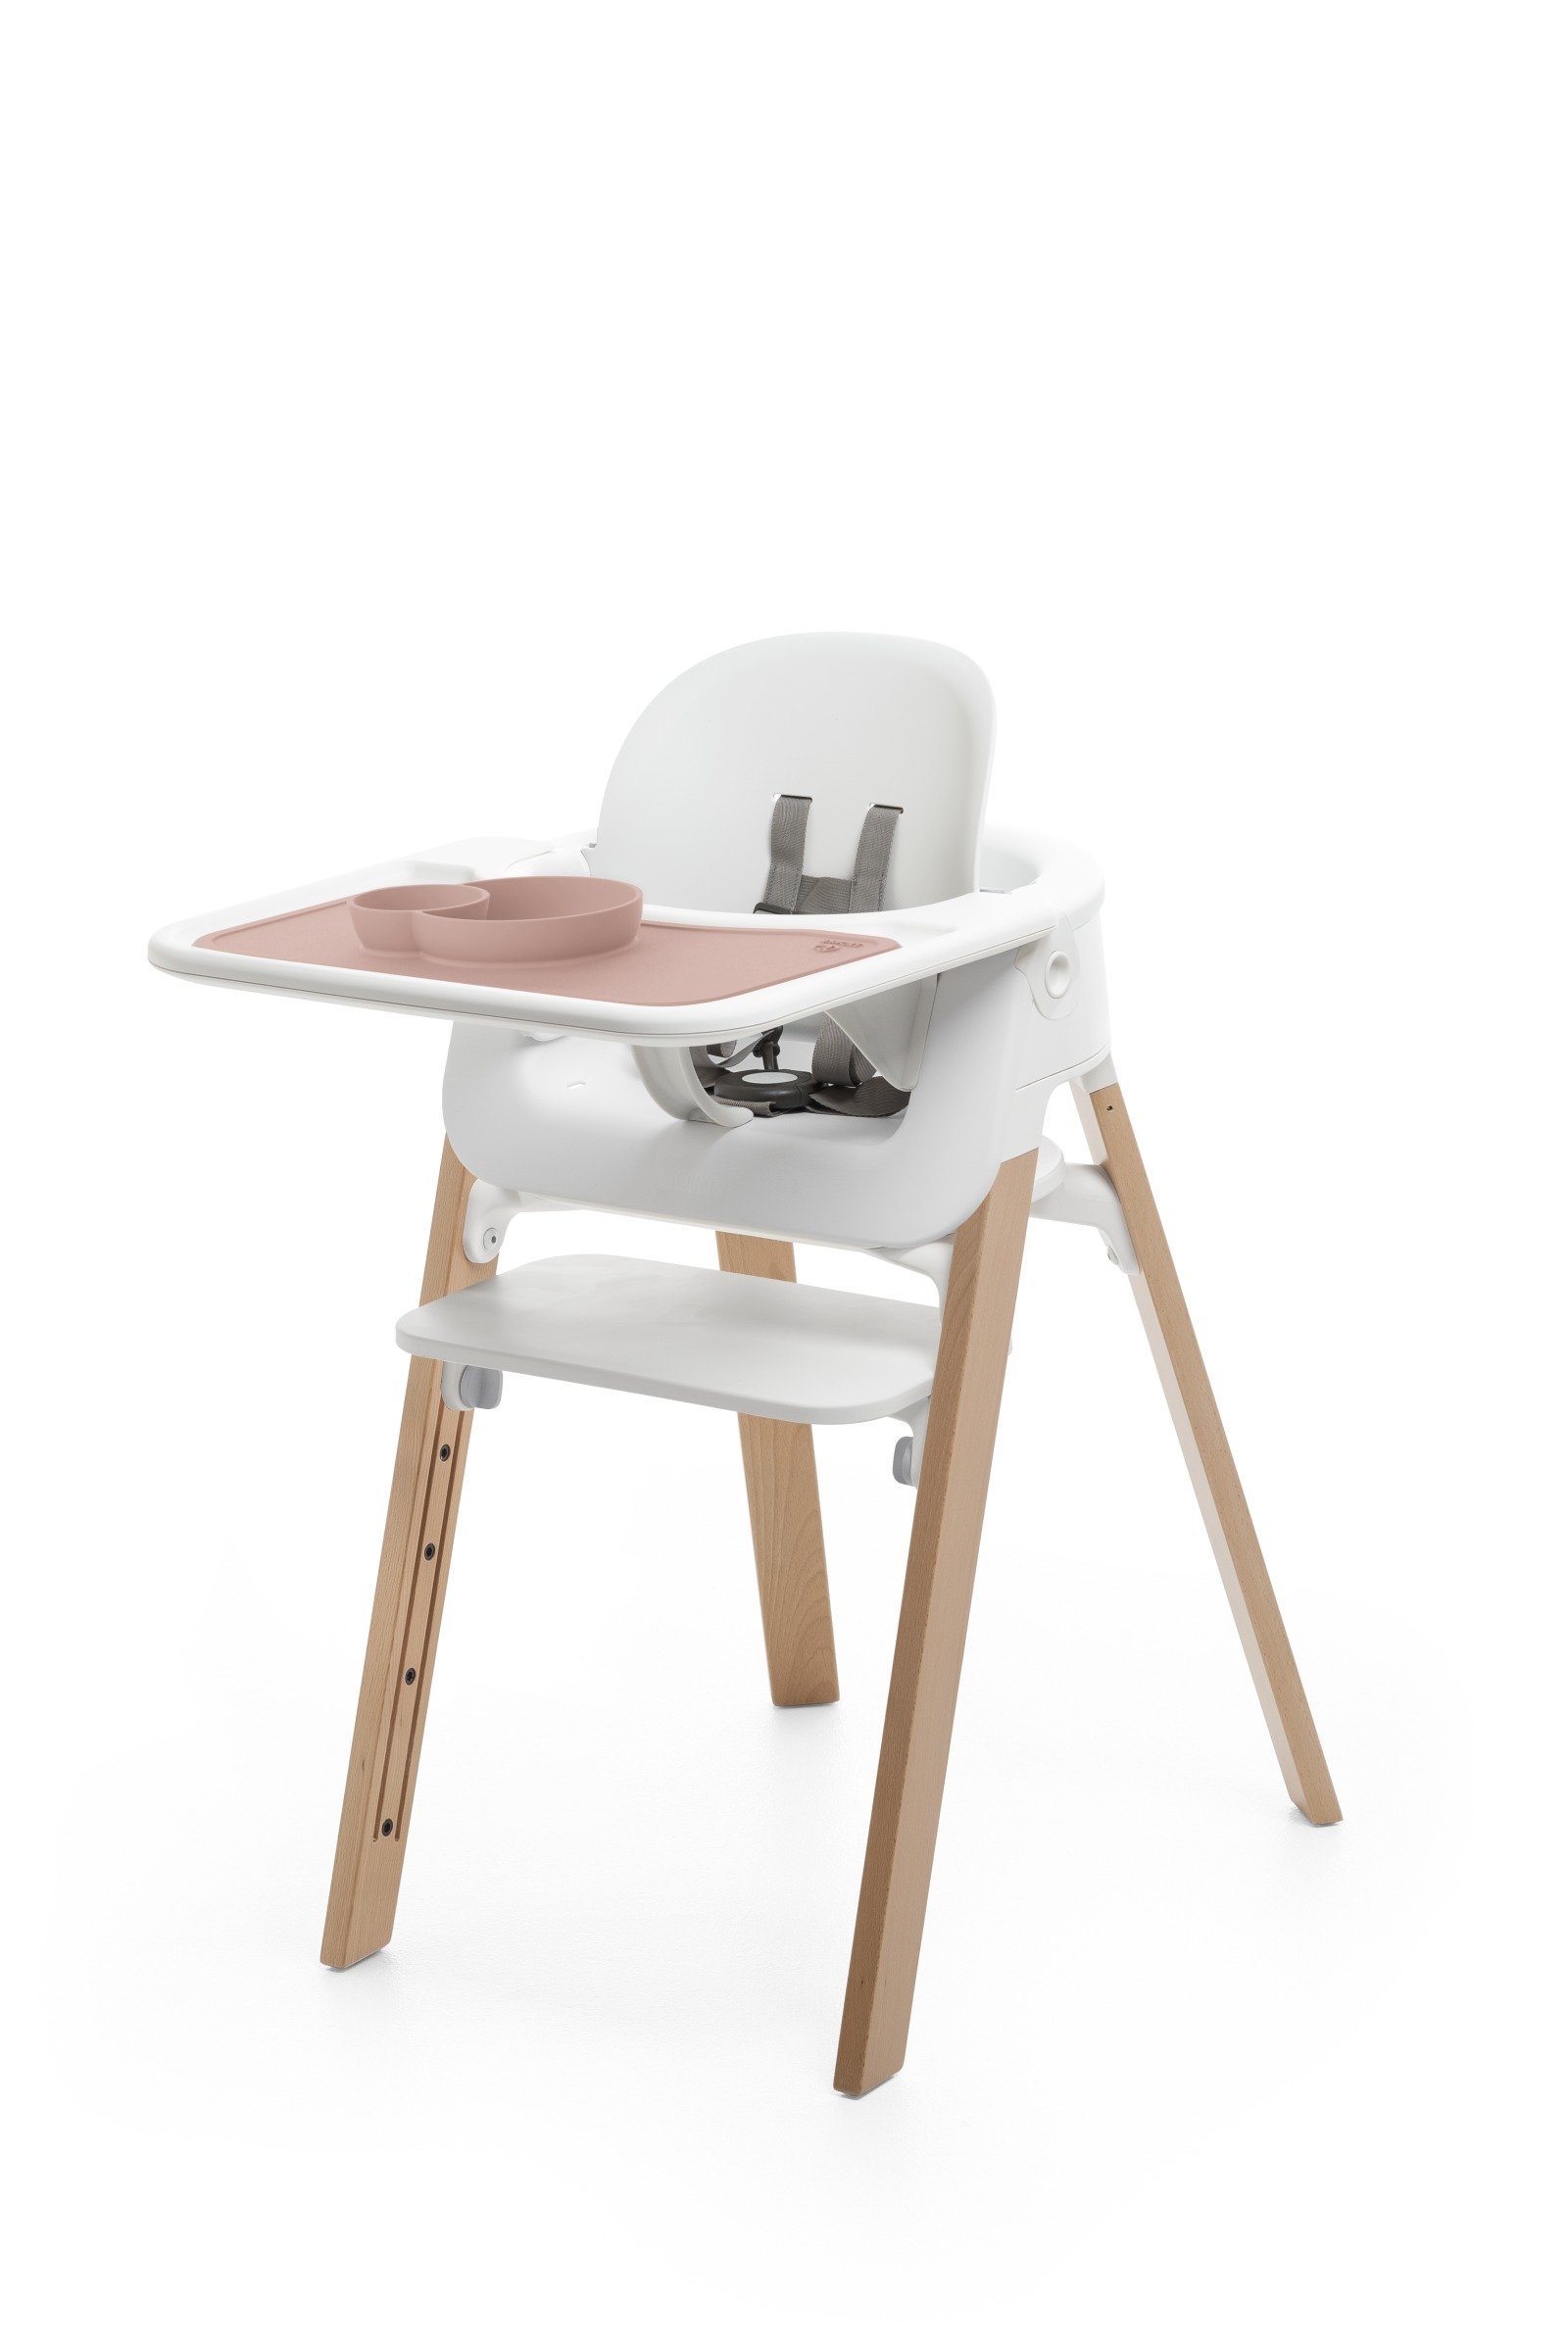 Accessories. Tray and Baby Set. Mounted on Stokke Steps highchair.